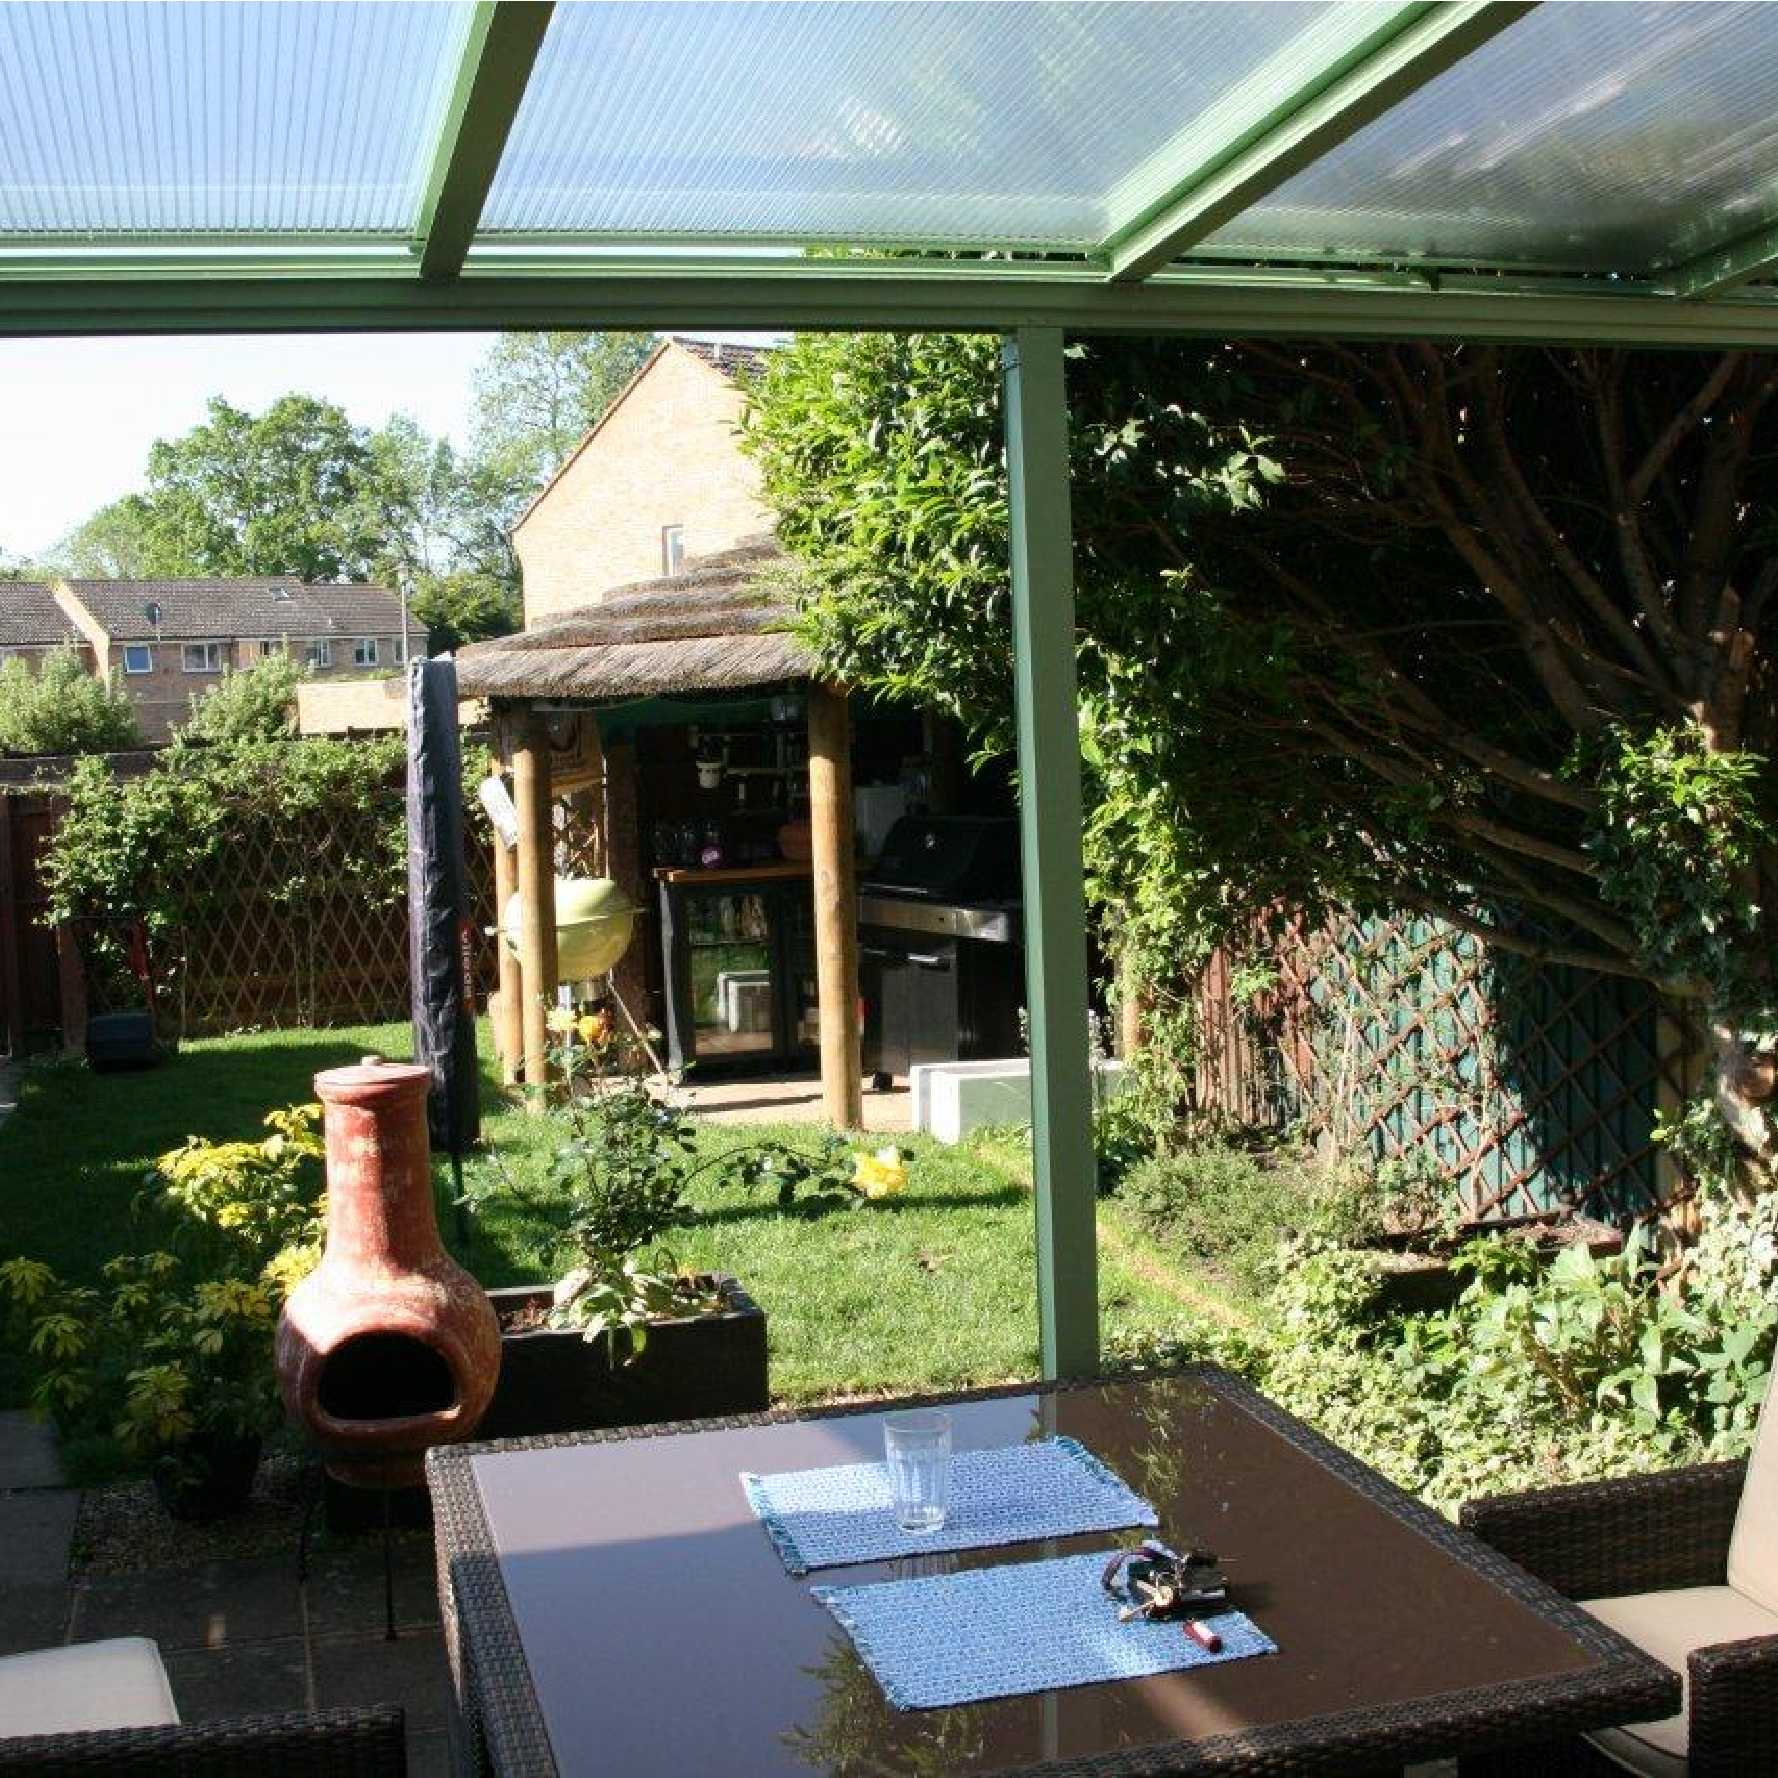 Affordable Omega Smart White Lean-To Canopy with 16mm Polycarbonate Glazing - 6.3m (W) x 3.5m (P), (4) Supporting Posts